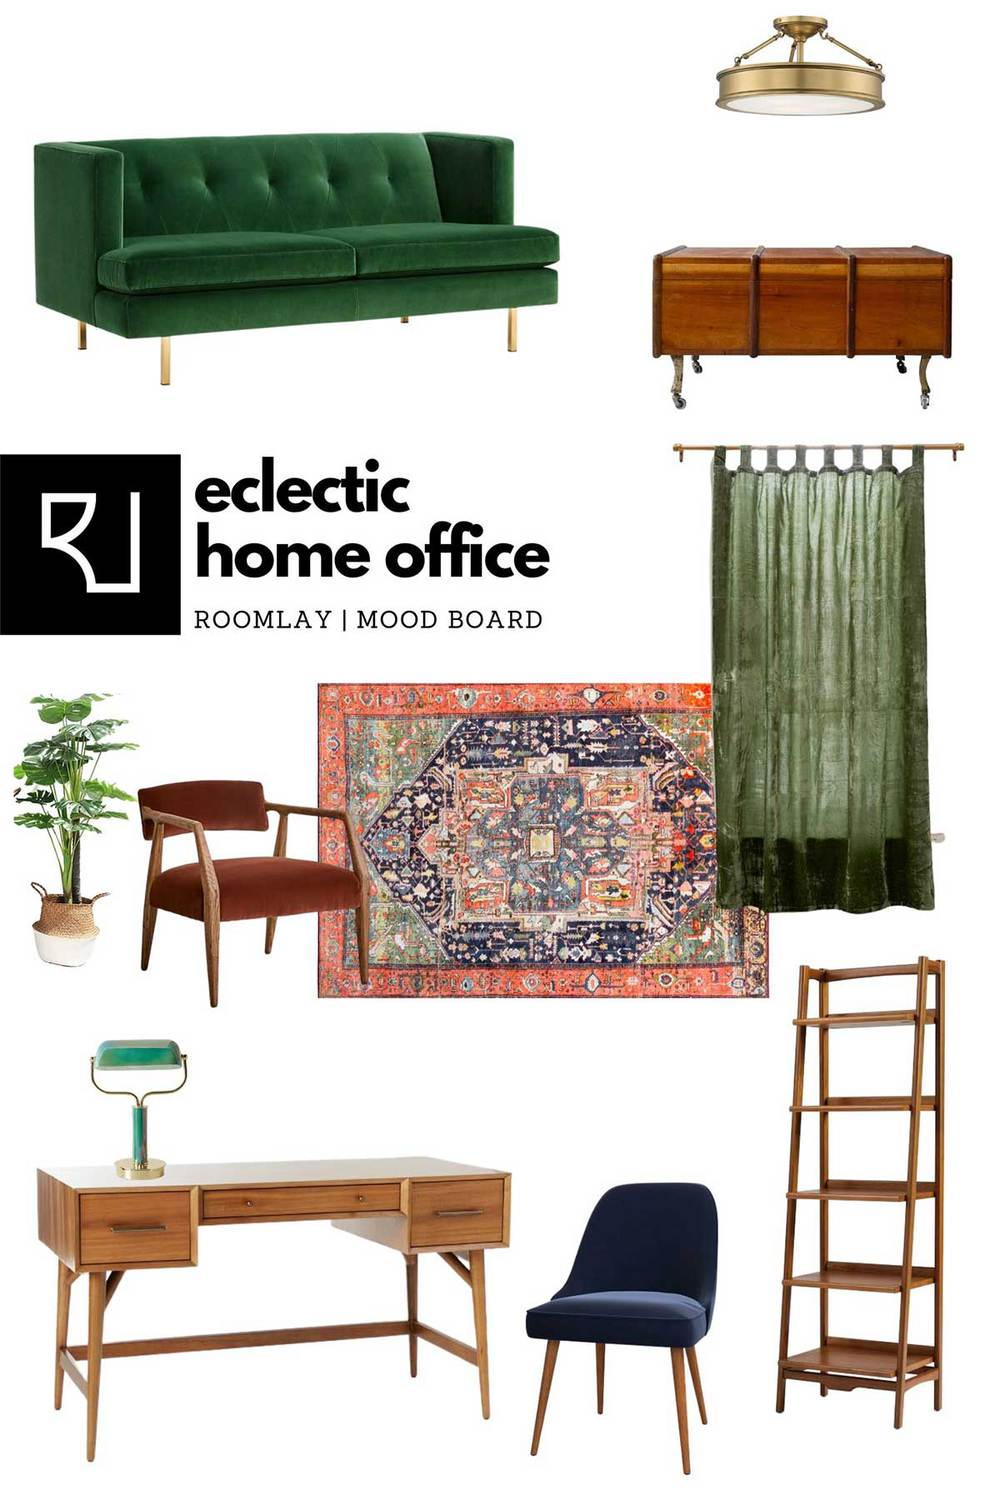 eclectic home office furniture mood board